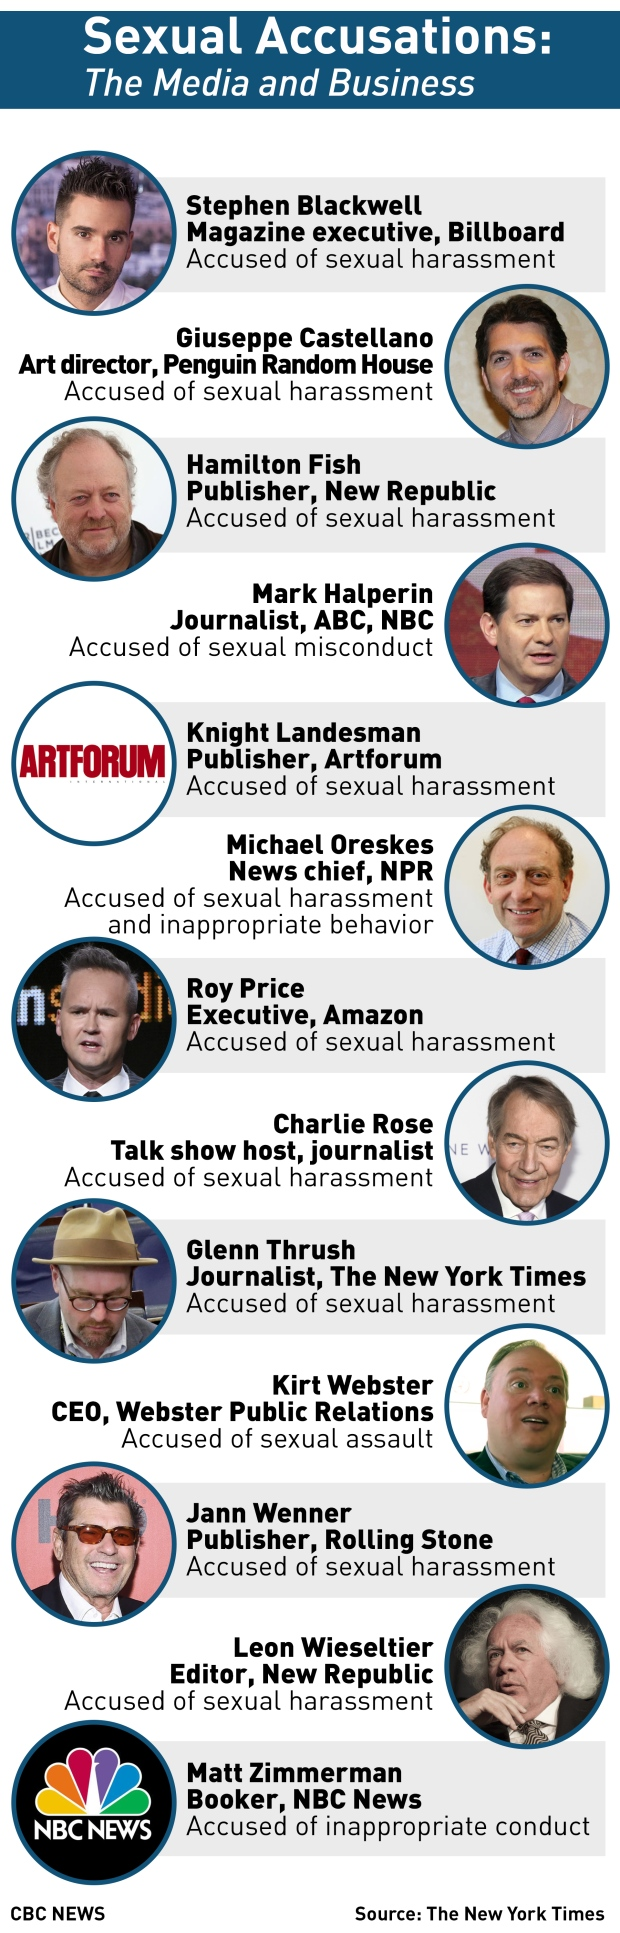 Sexual misconduct, harassment, assault allegations - media